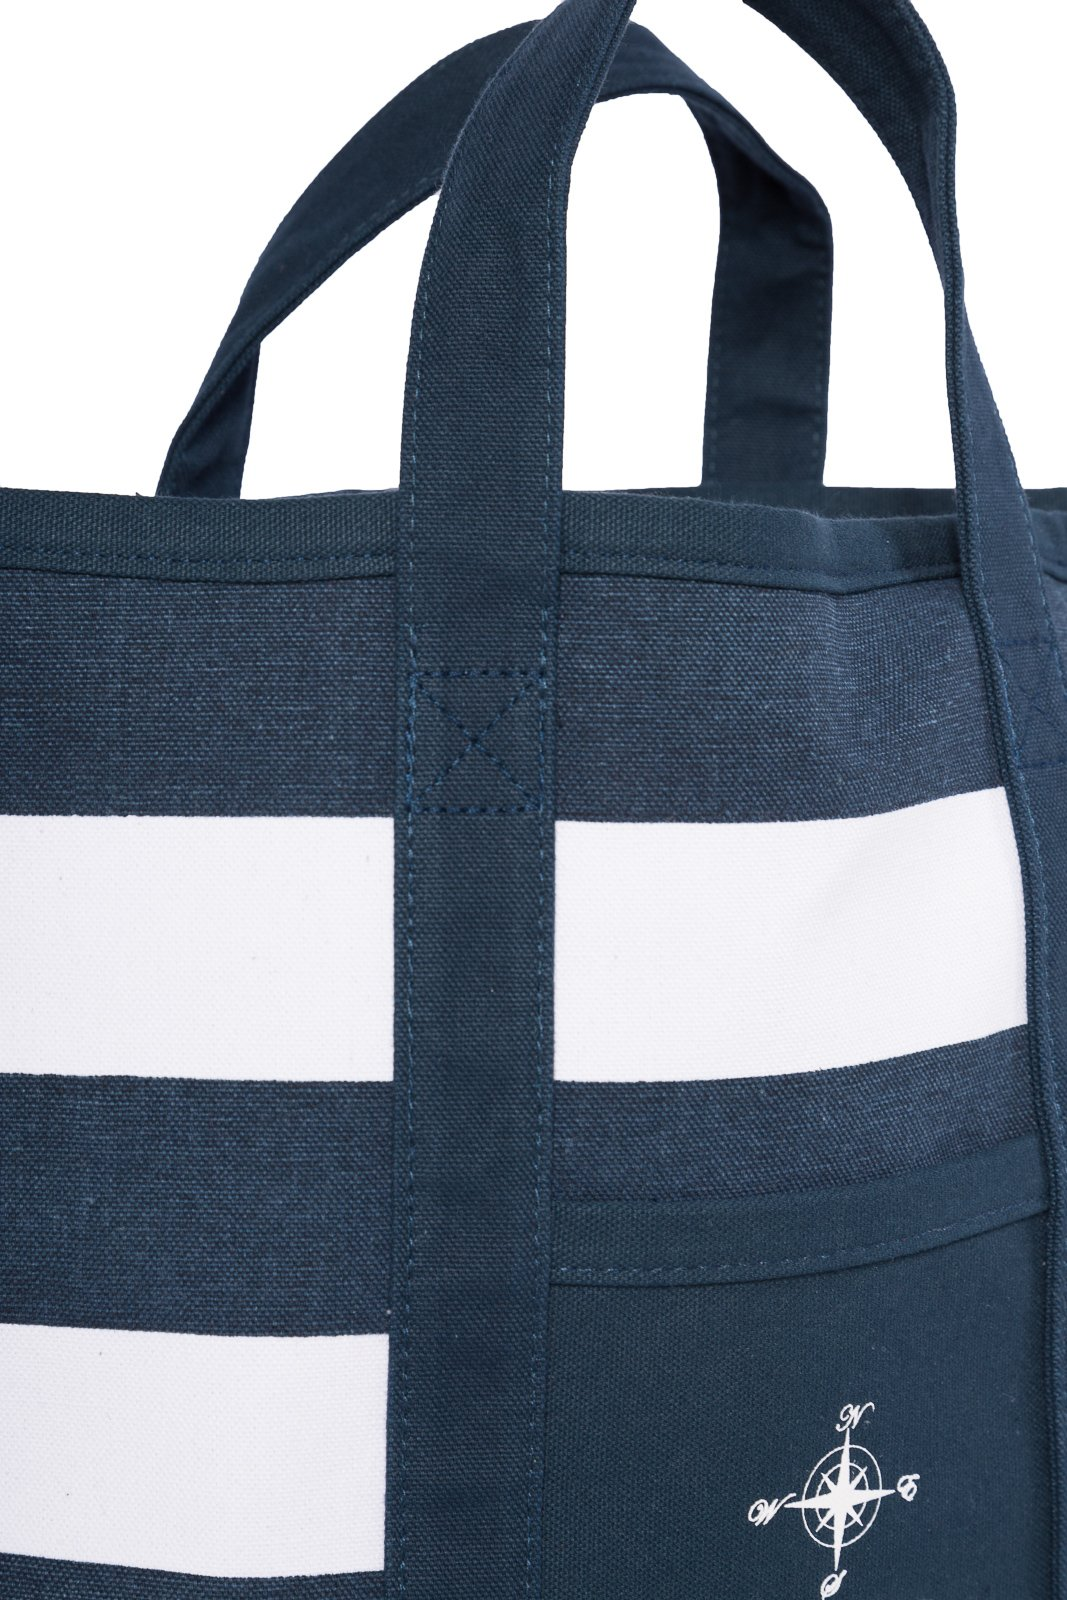 Fishers Finery Canvas Tote with Zipper and Lining with interior Pockets; Multi Sizes and Colors (Navy, S) by Fishers Finery (Image #5)